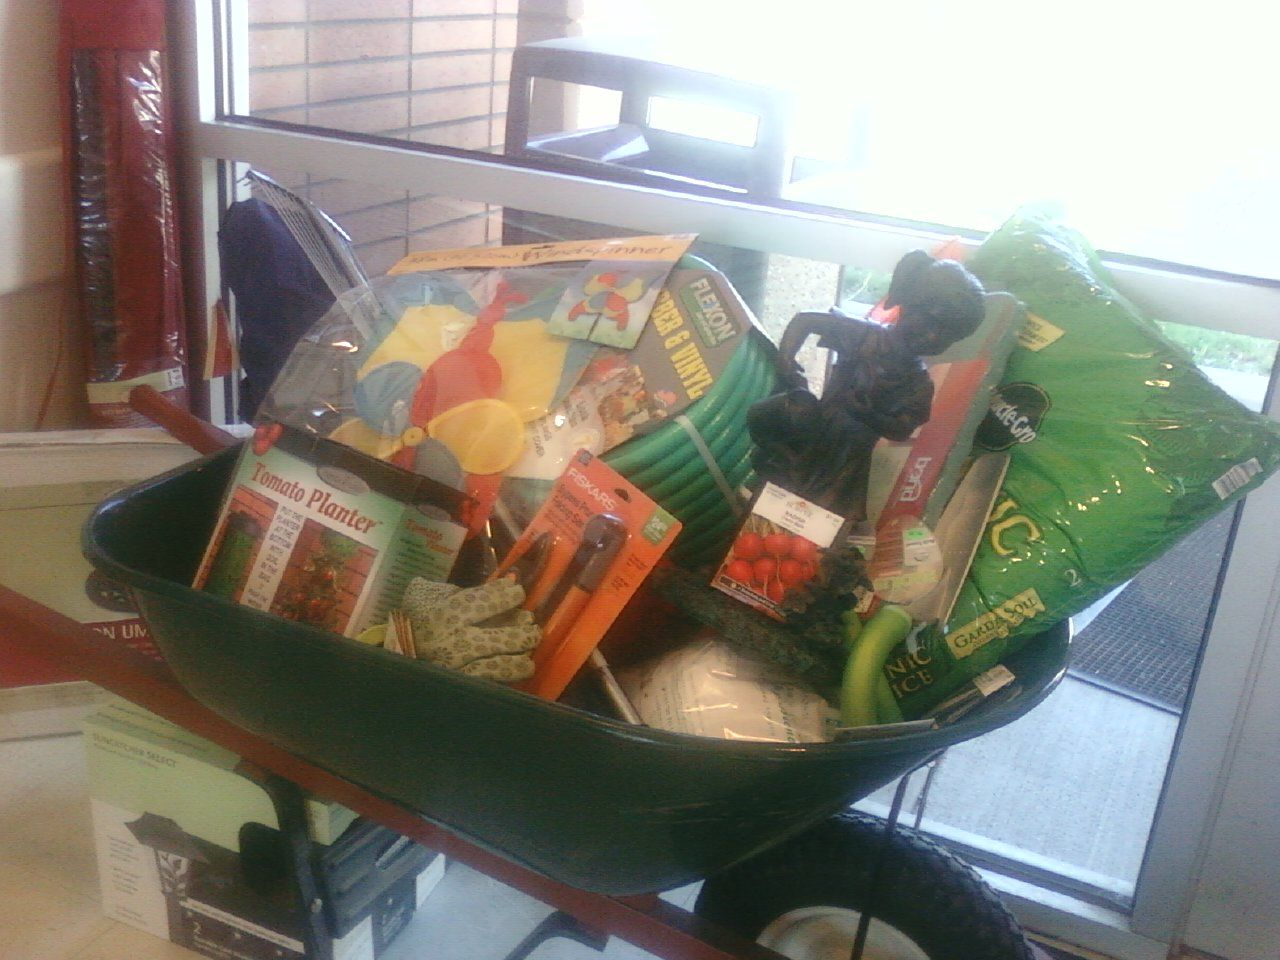 Garden Basket Ideas retirement gift basket Best 344 Auction Baskets And Other Great Auction Ideas Images On Pinterest Other